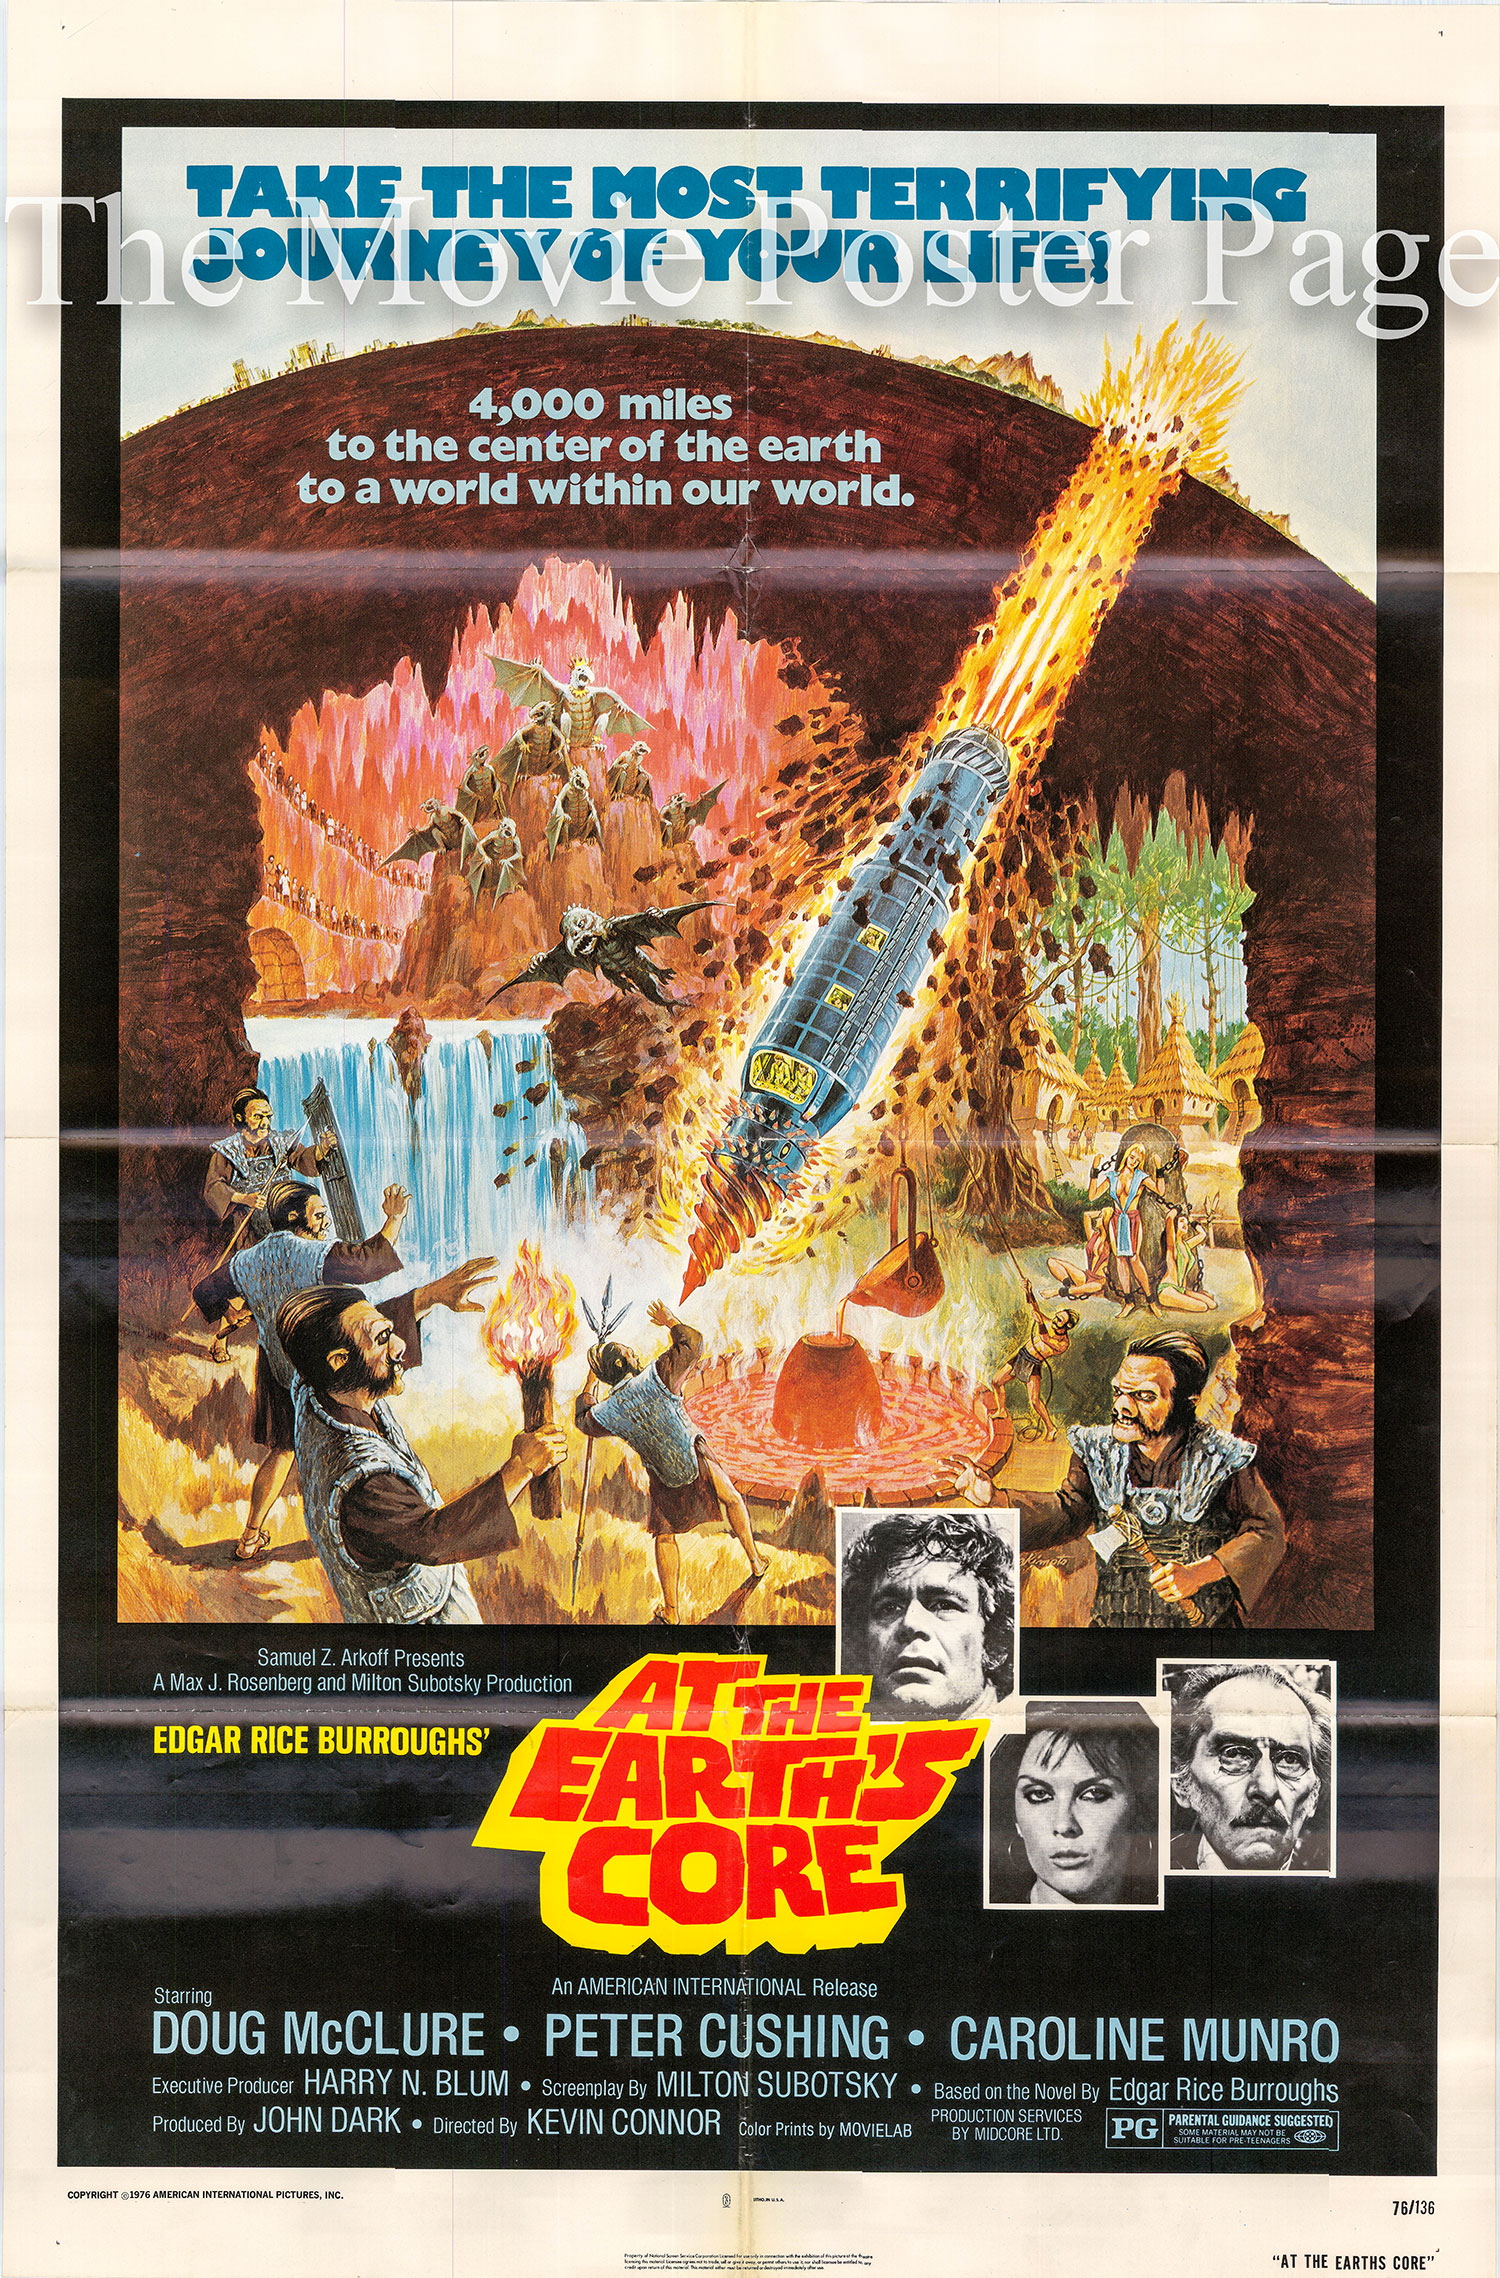 Pictured is a US one=sheet poster for the 1976 Kevin Connor film At the Earth's Core starring Doug McClure.